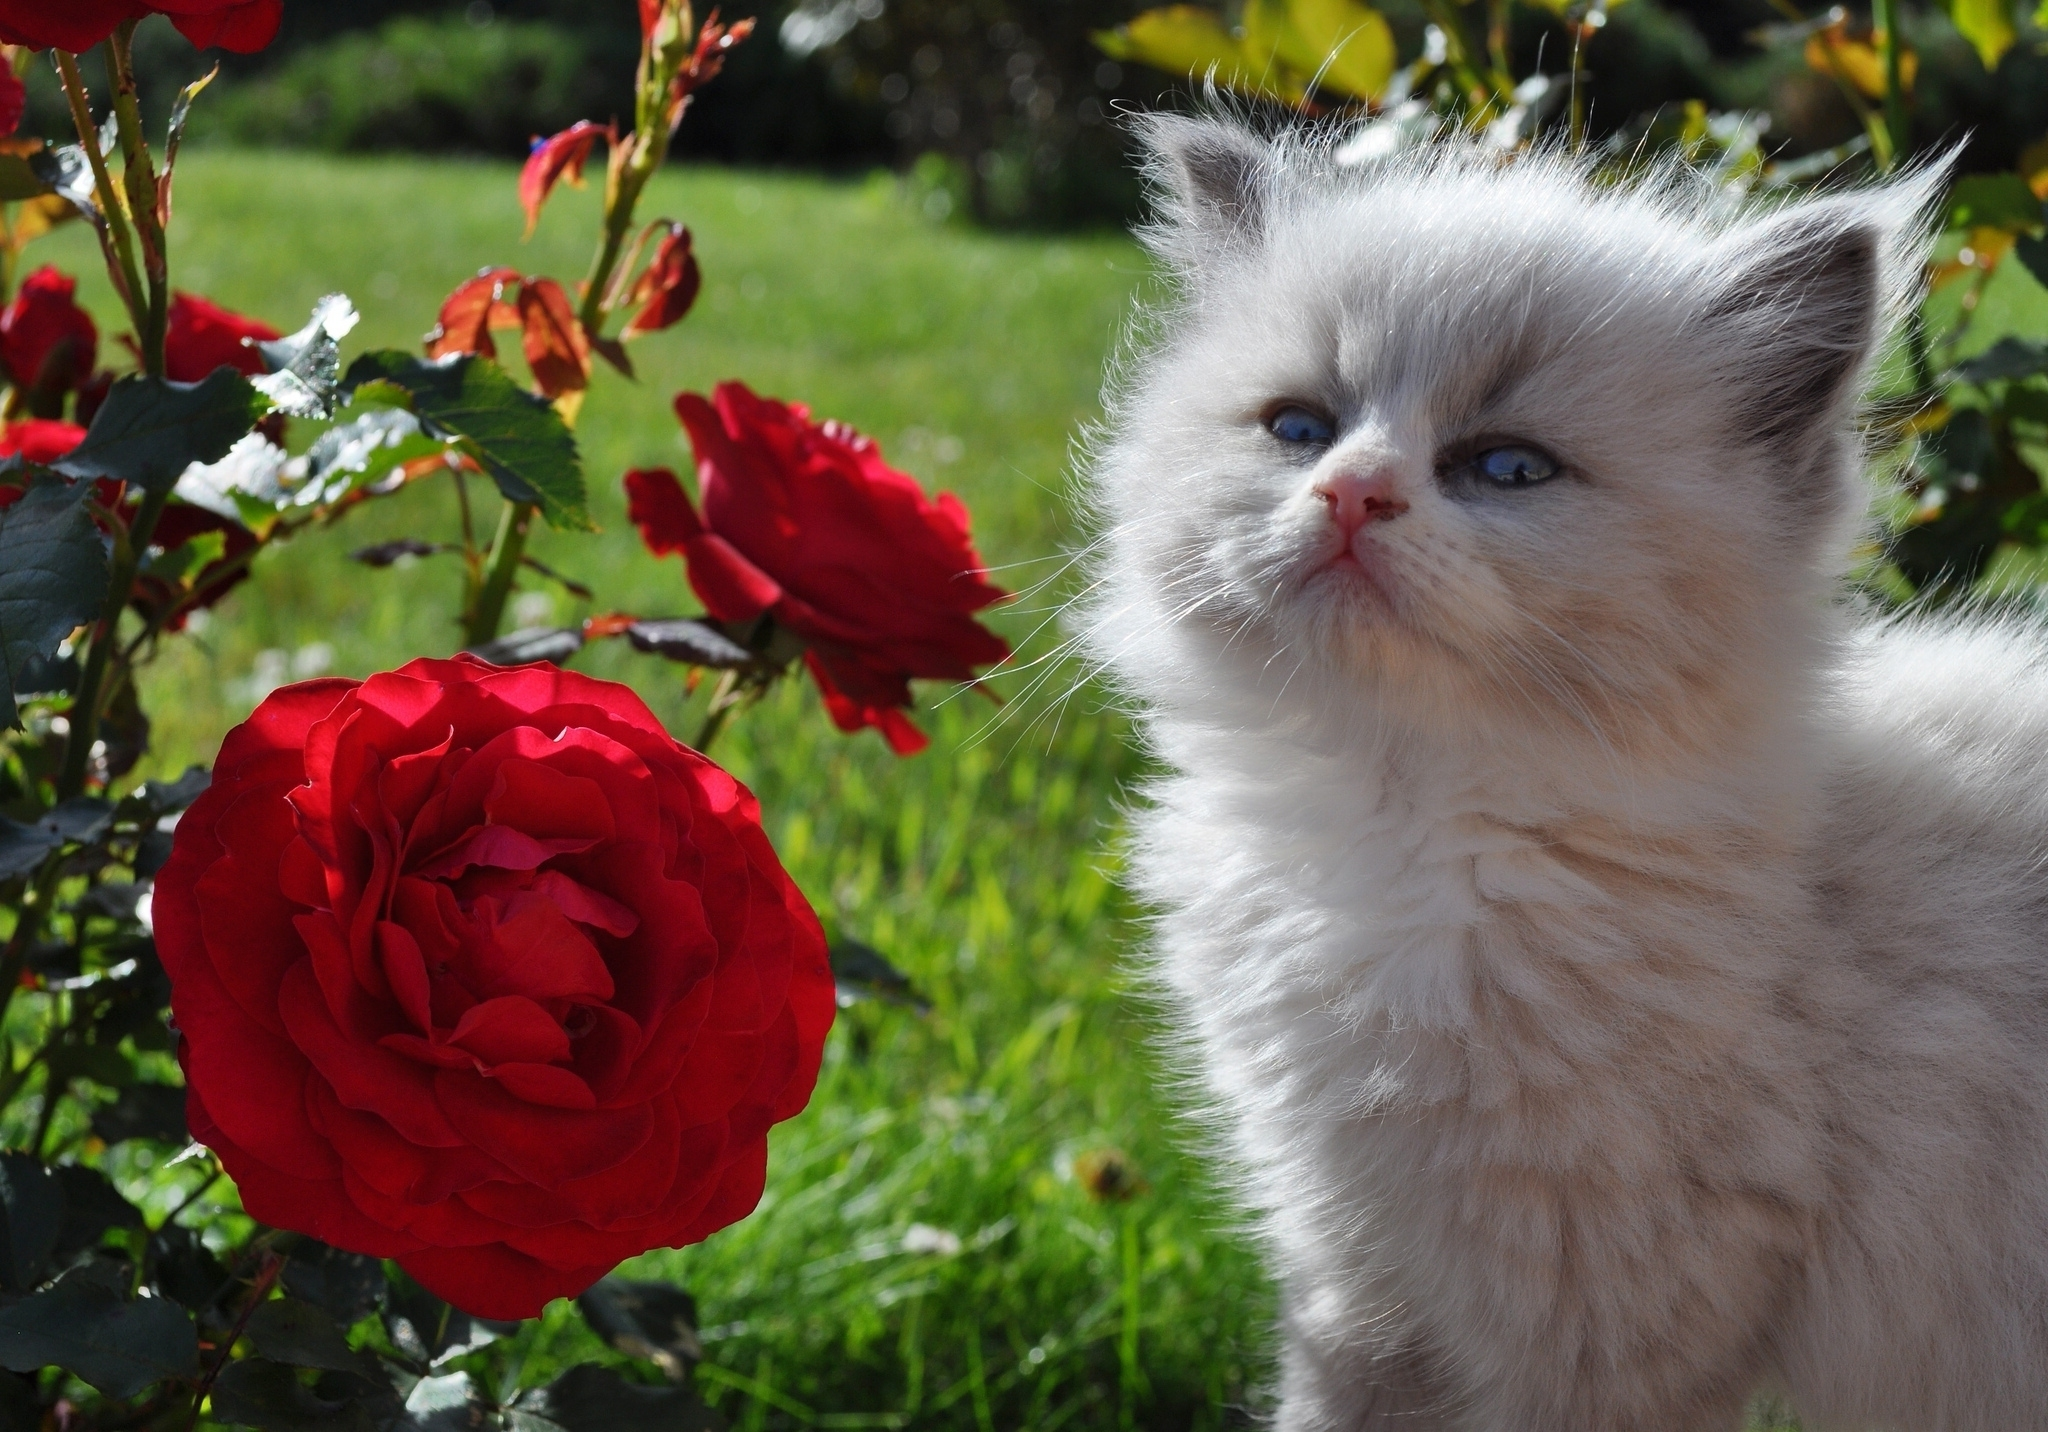 104954 download wallpaper Animals, Grass, Fluffy, Rose Flower, Rose, Kitty, Kitten, Muzzle, Sight, Opinion screensavers and pictures for free